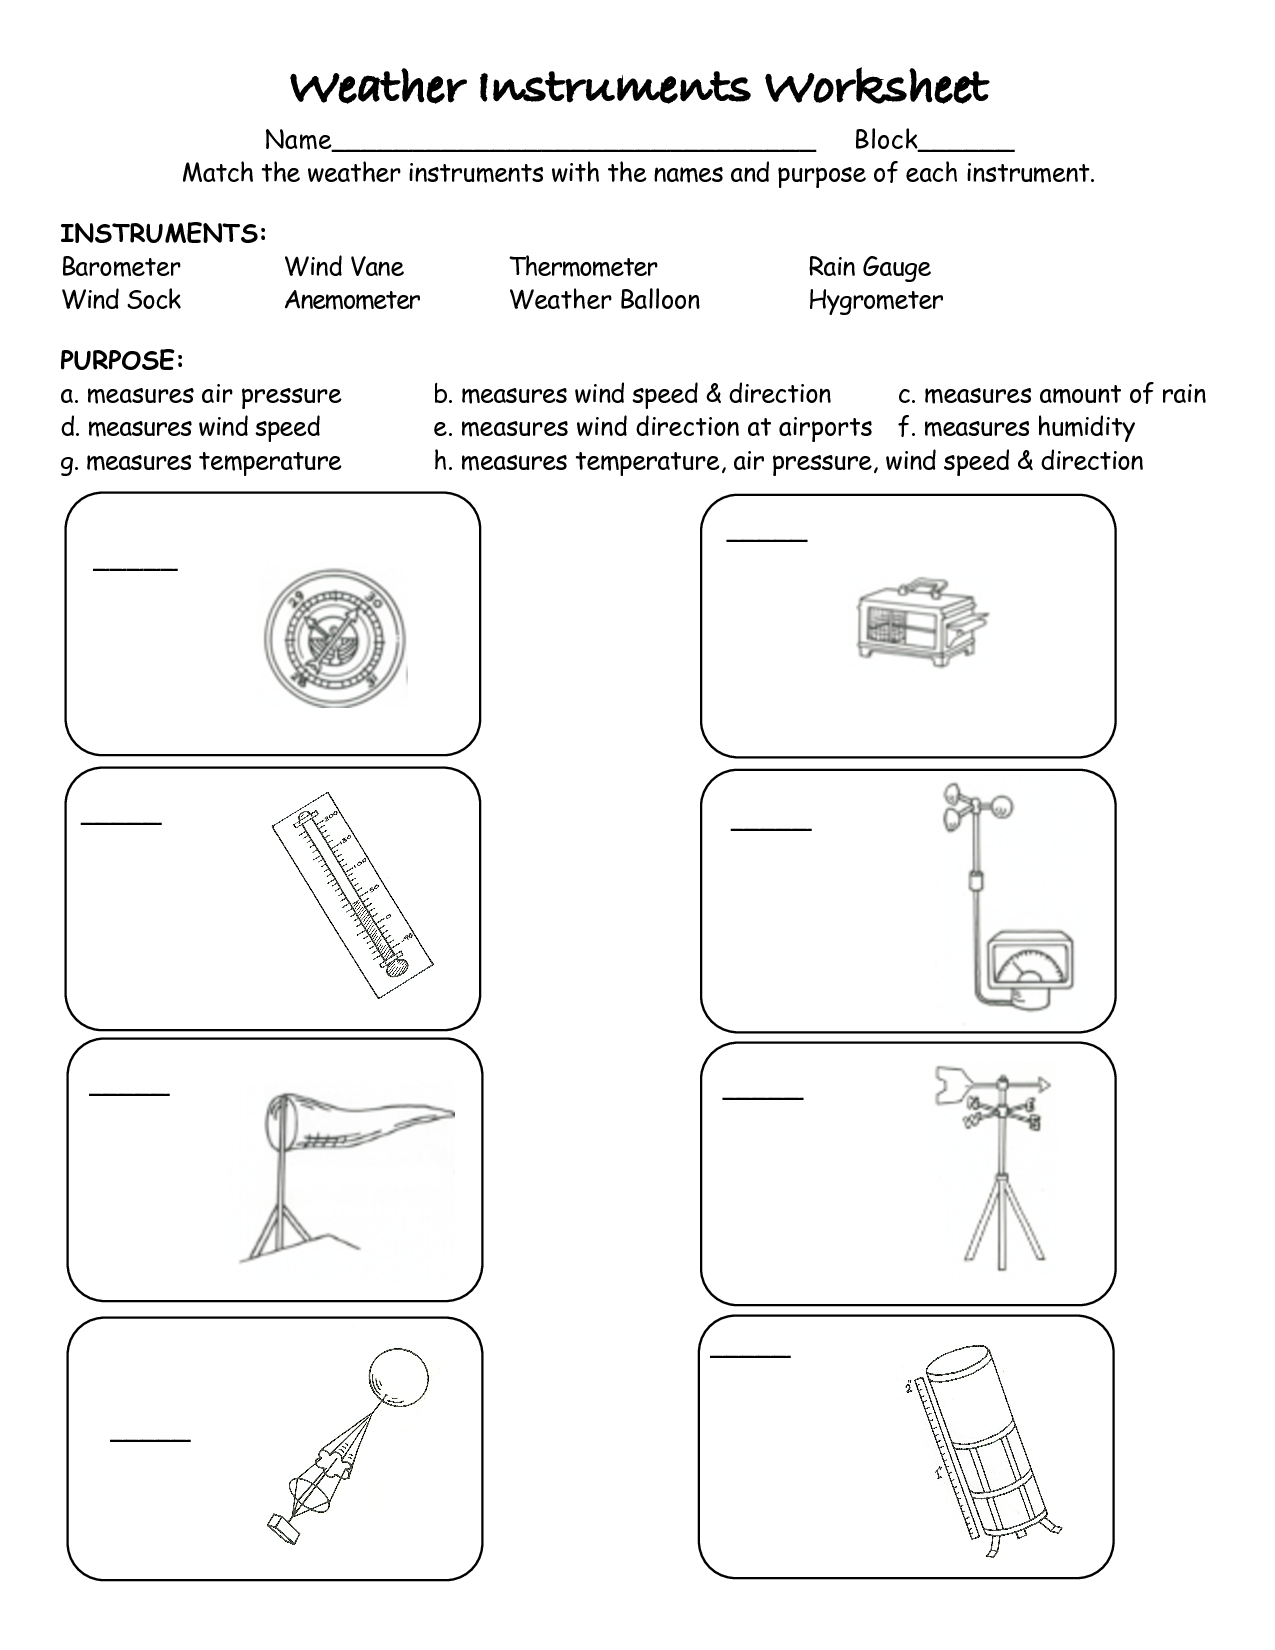 Worksheets Scientific Tools Worksheet worksheets weather instruments pdf recipes pdf